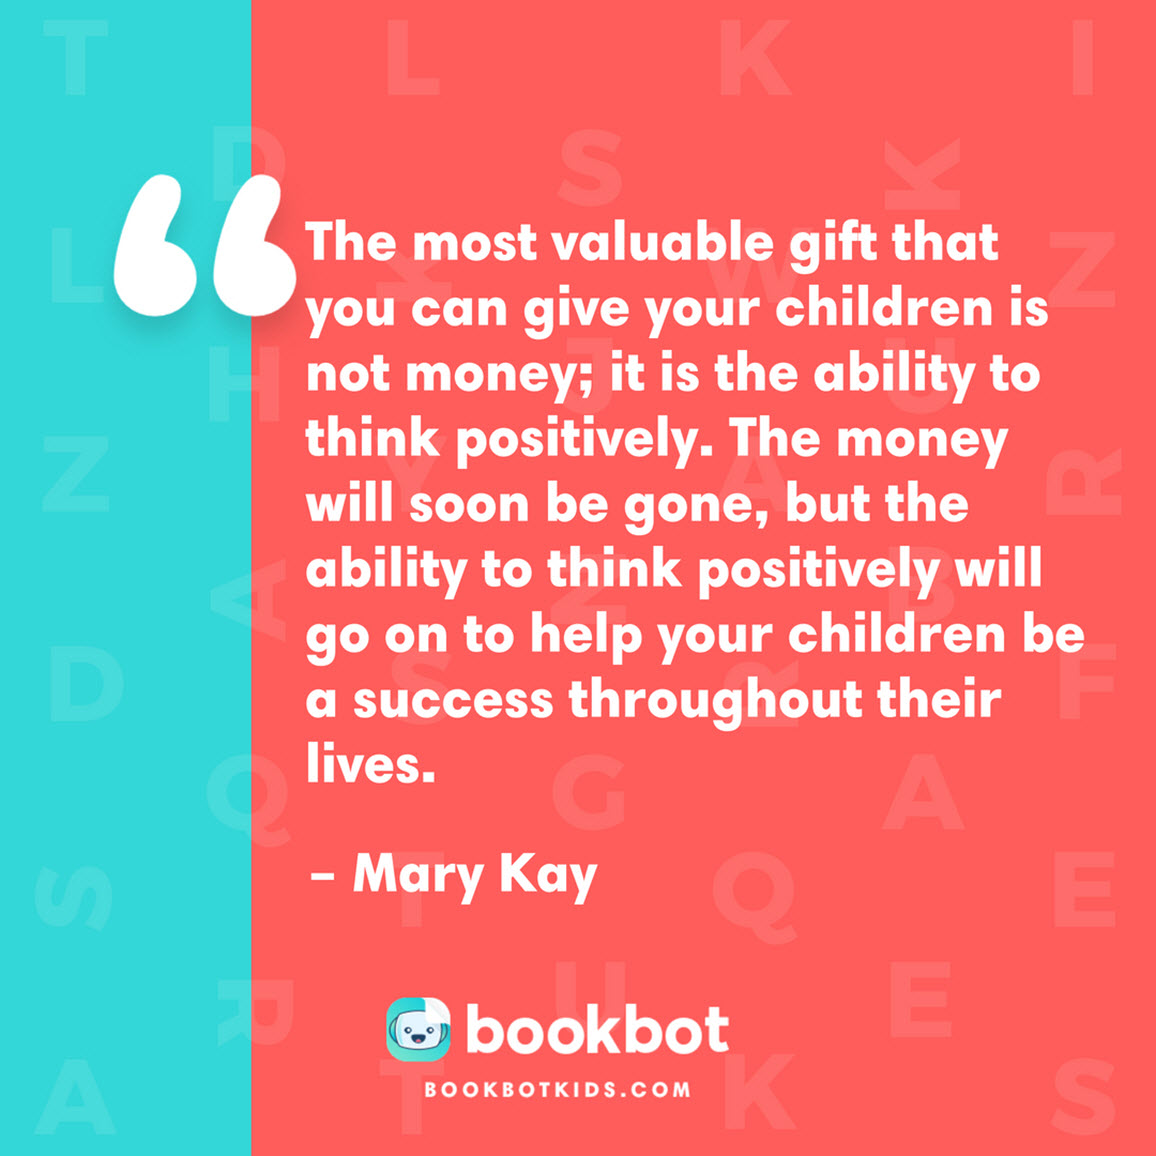 The most valuable gift that you can give your children is not money; it is the ability to think positively. The money will soon be gone, but the ability to think positively will go on to help your children be a success throughout their lives. – Mary Kay